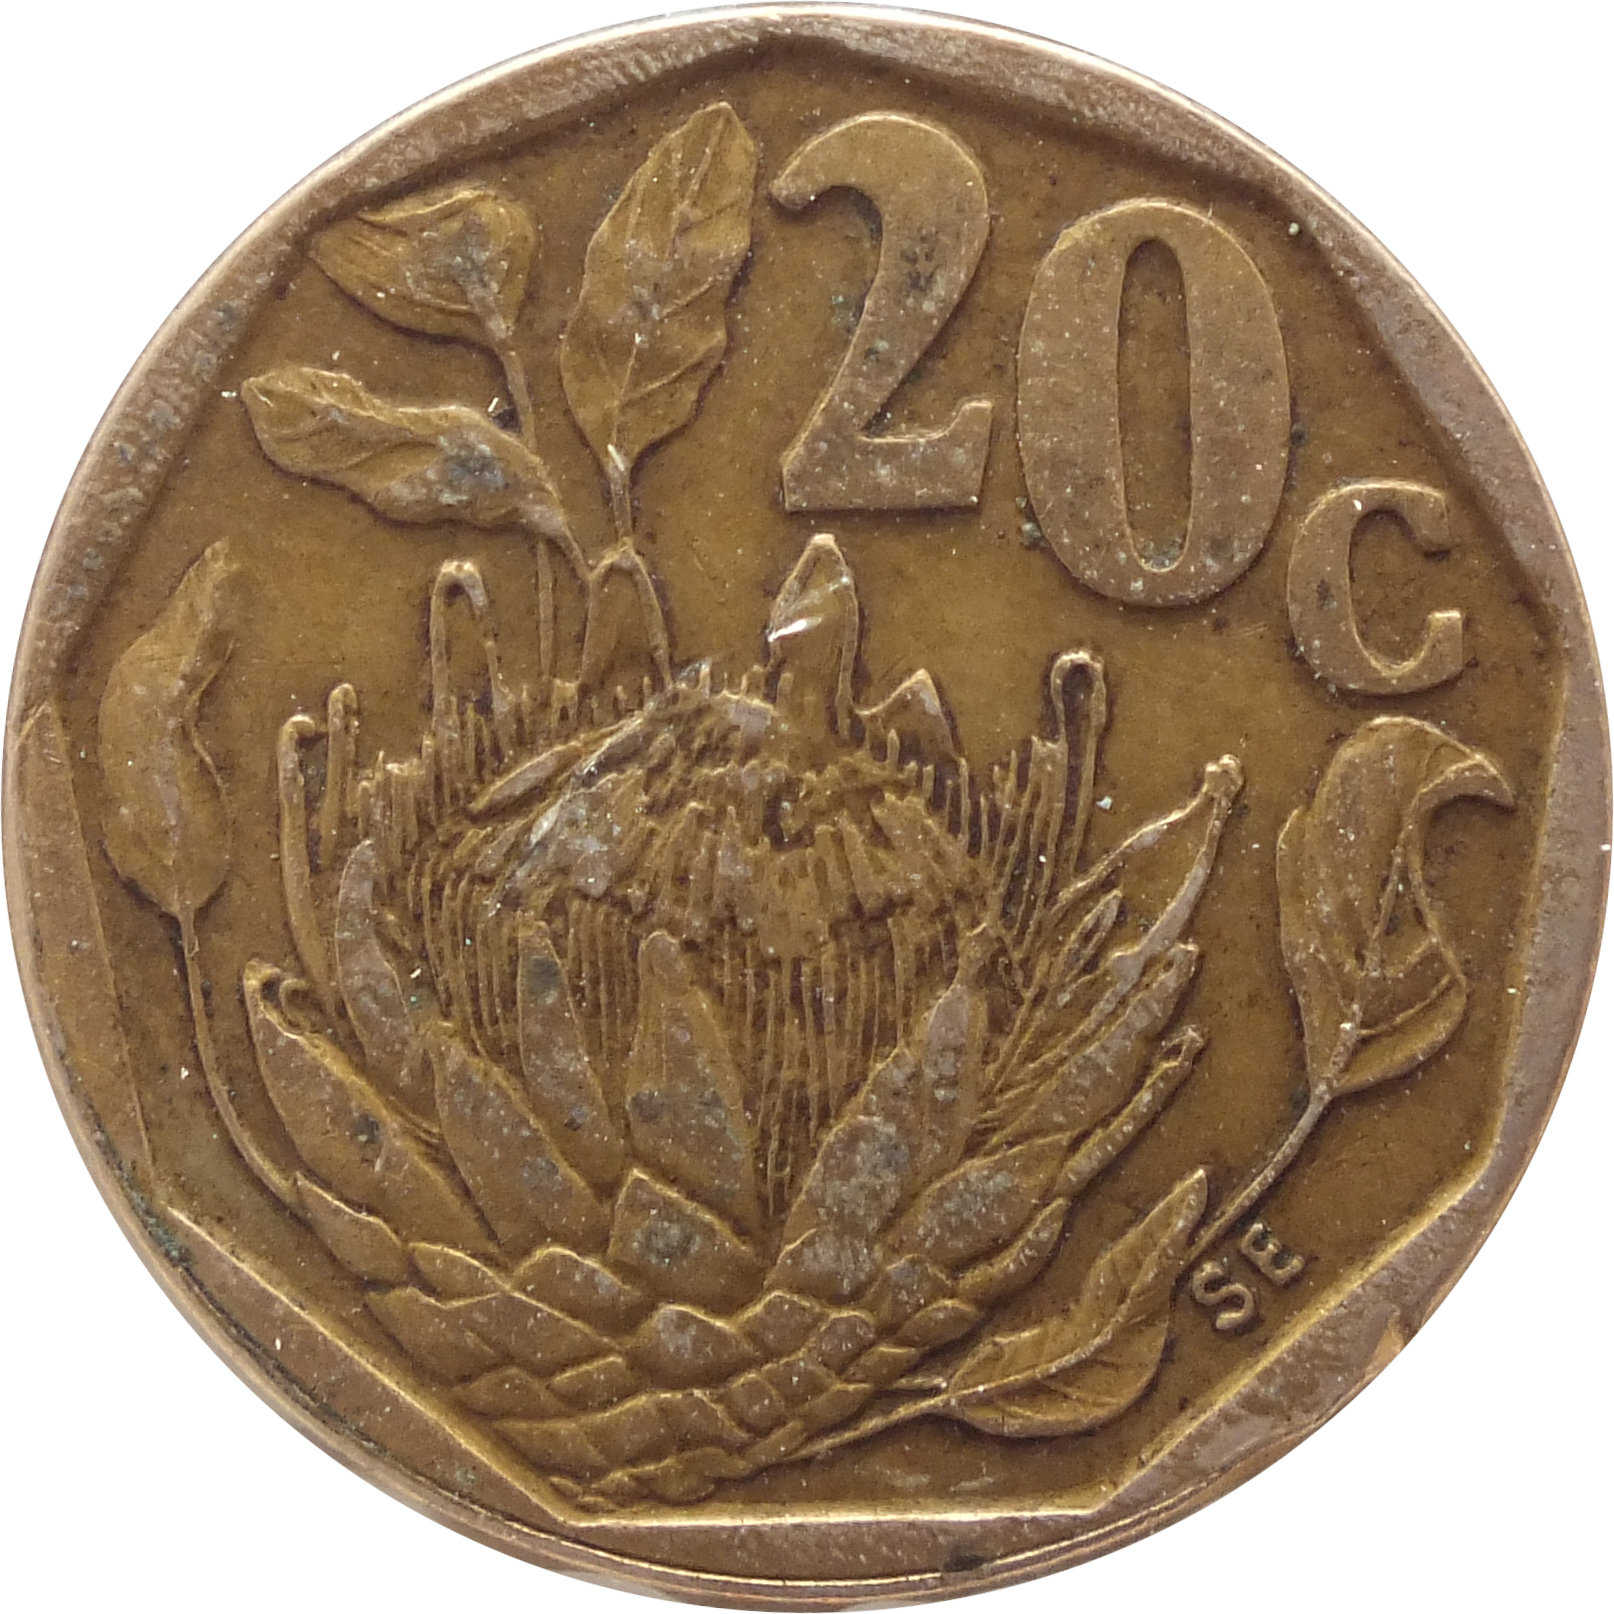 20 Cents South Africa Suid Afrika 1990 1995 South Africa Km 136 Coinsbook